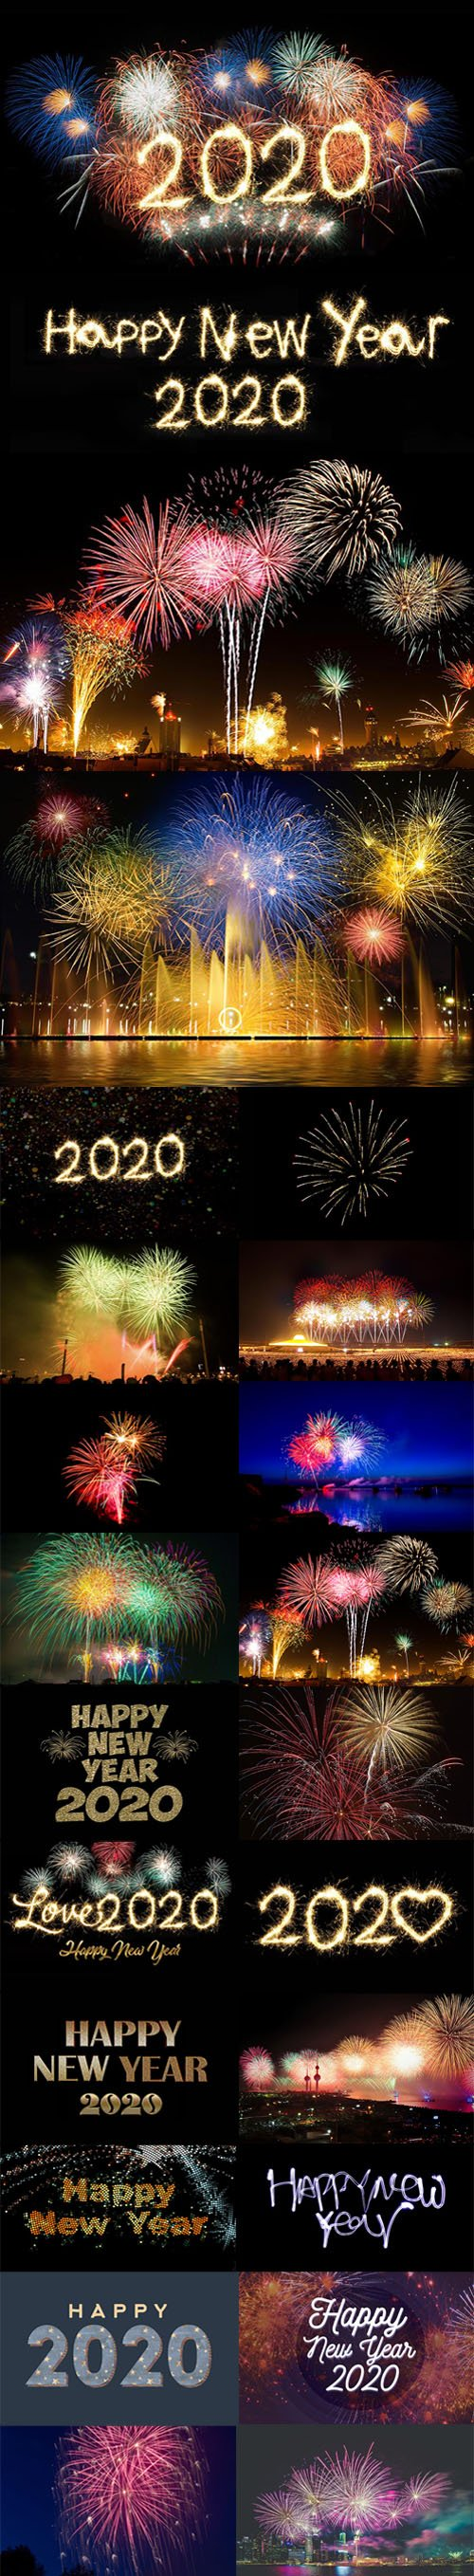 30 Happy New Year 2020 Stock Photos & Wallpapers HD